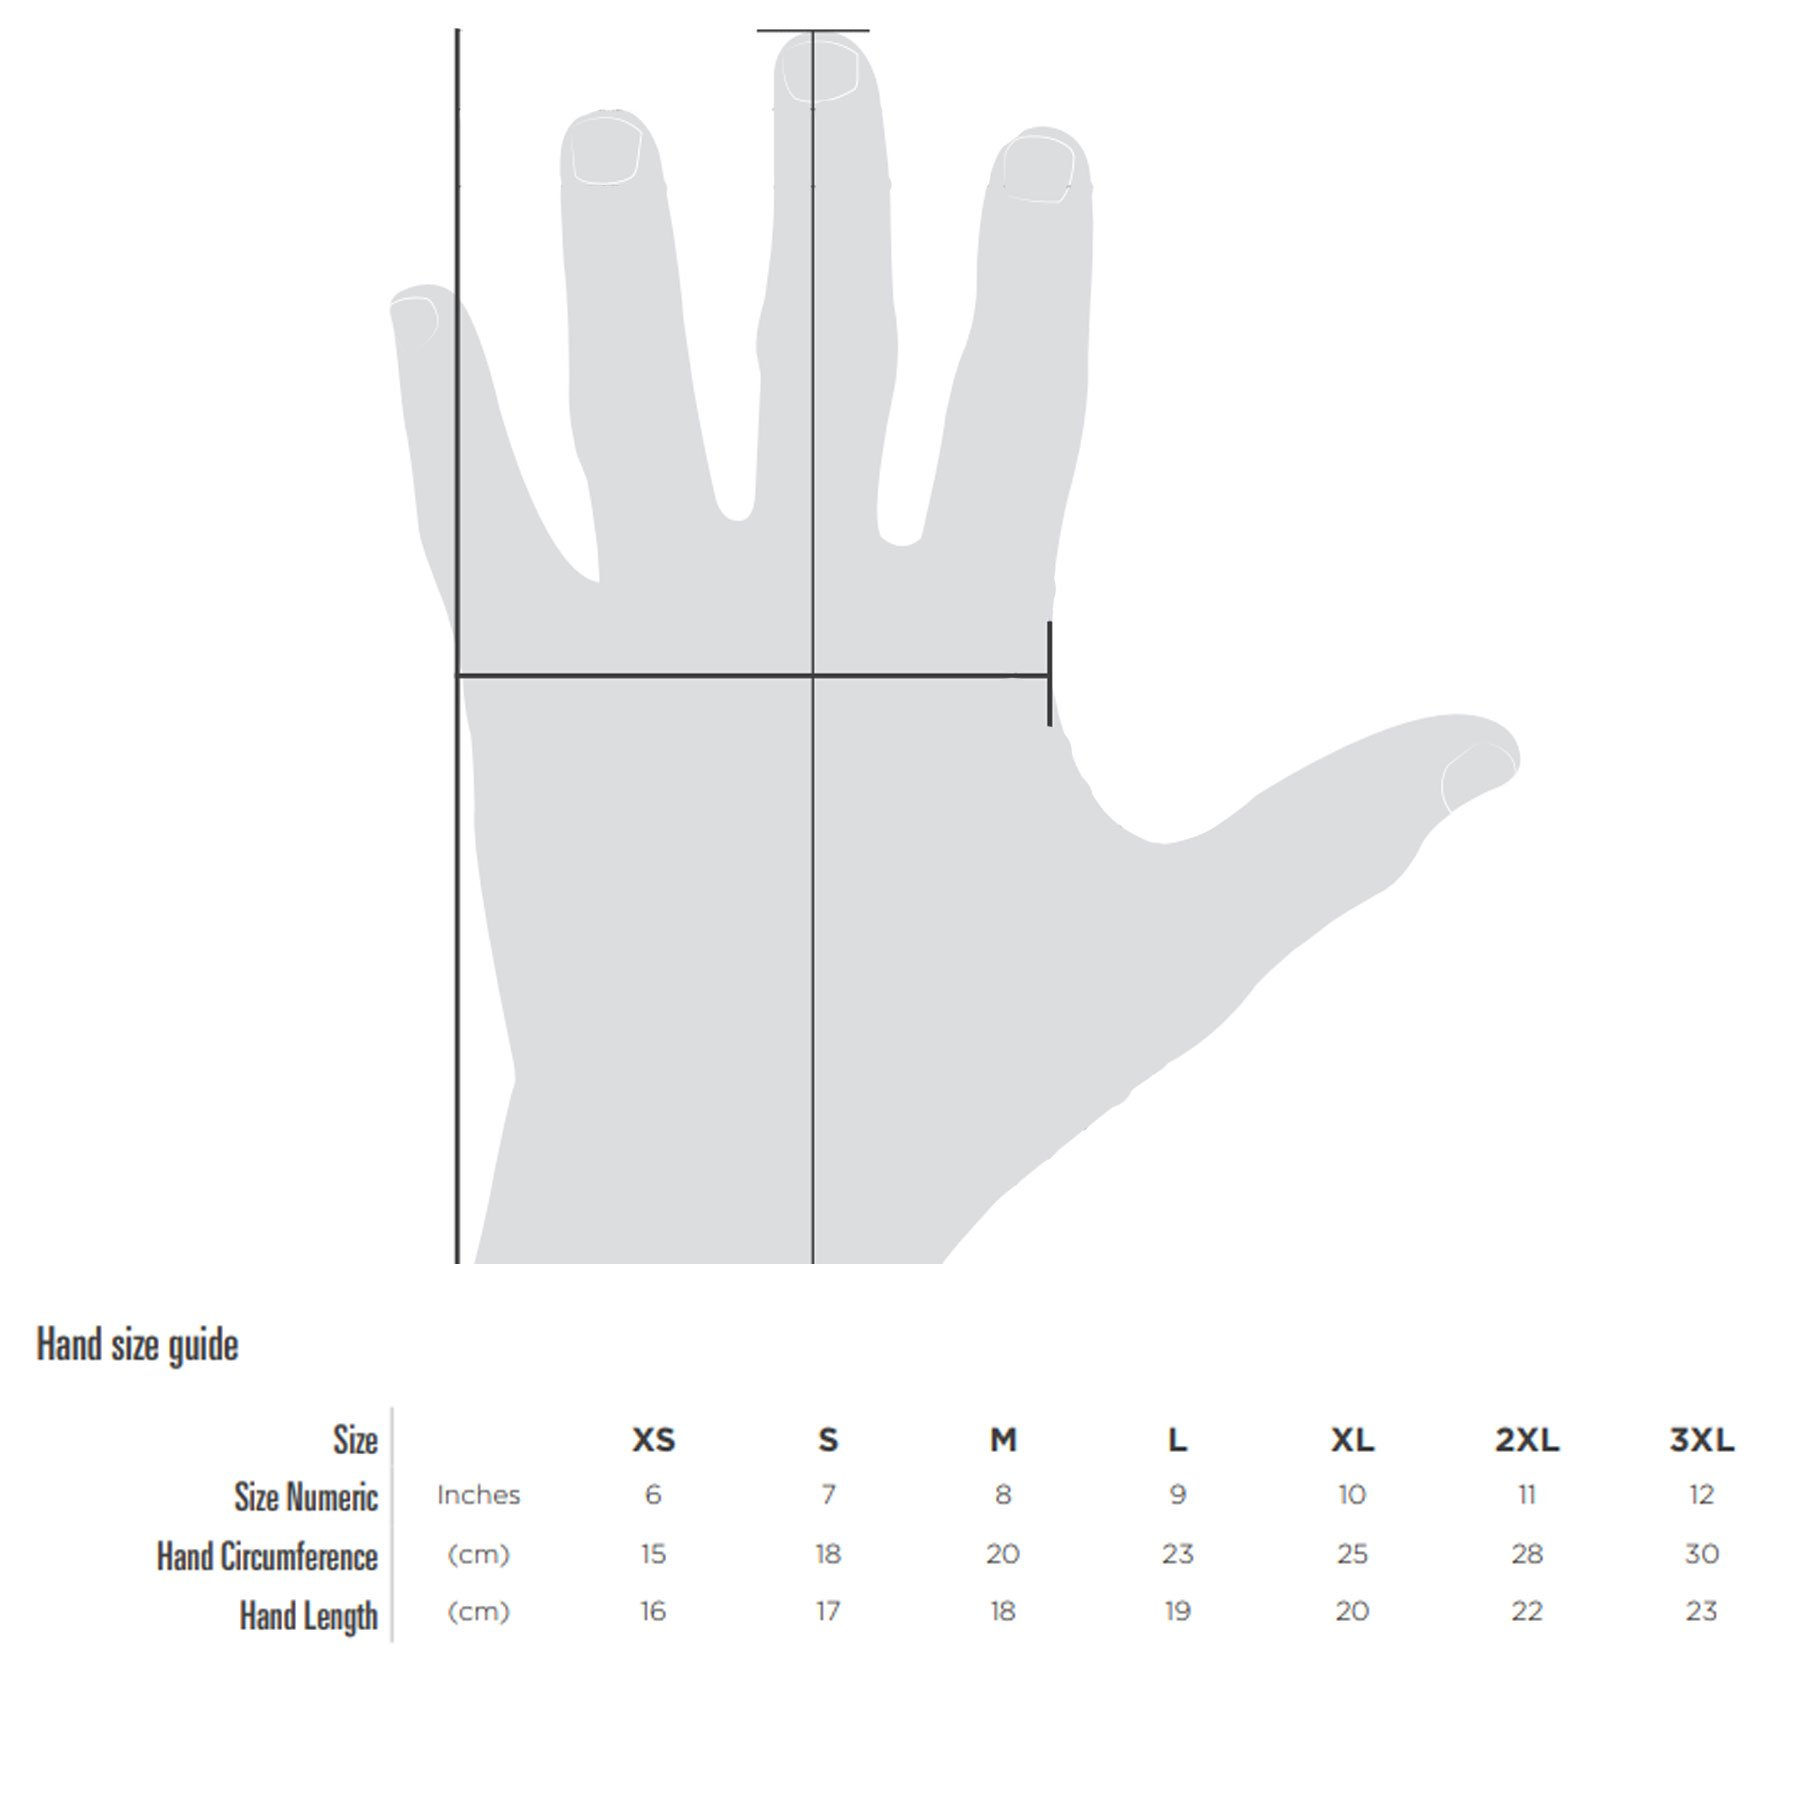 Oxford gloves size guide